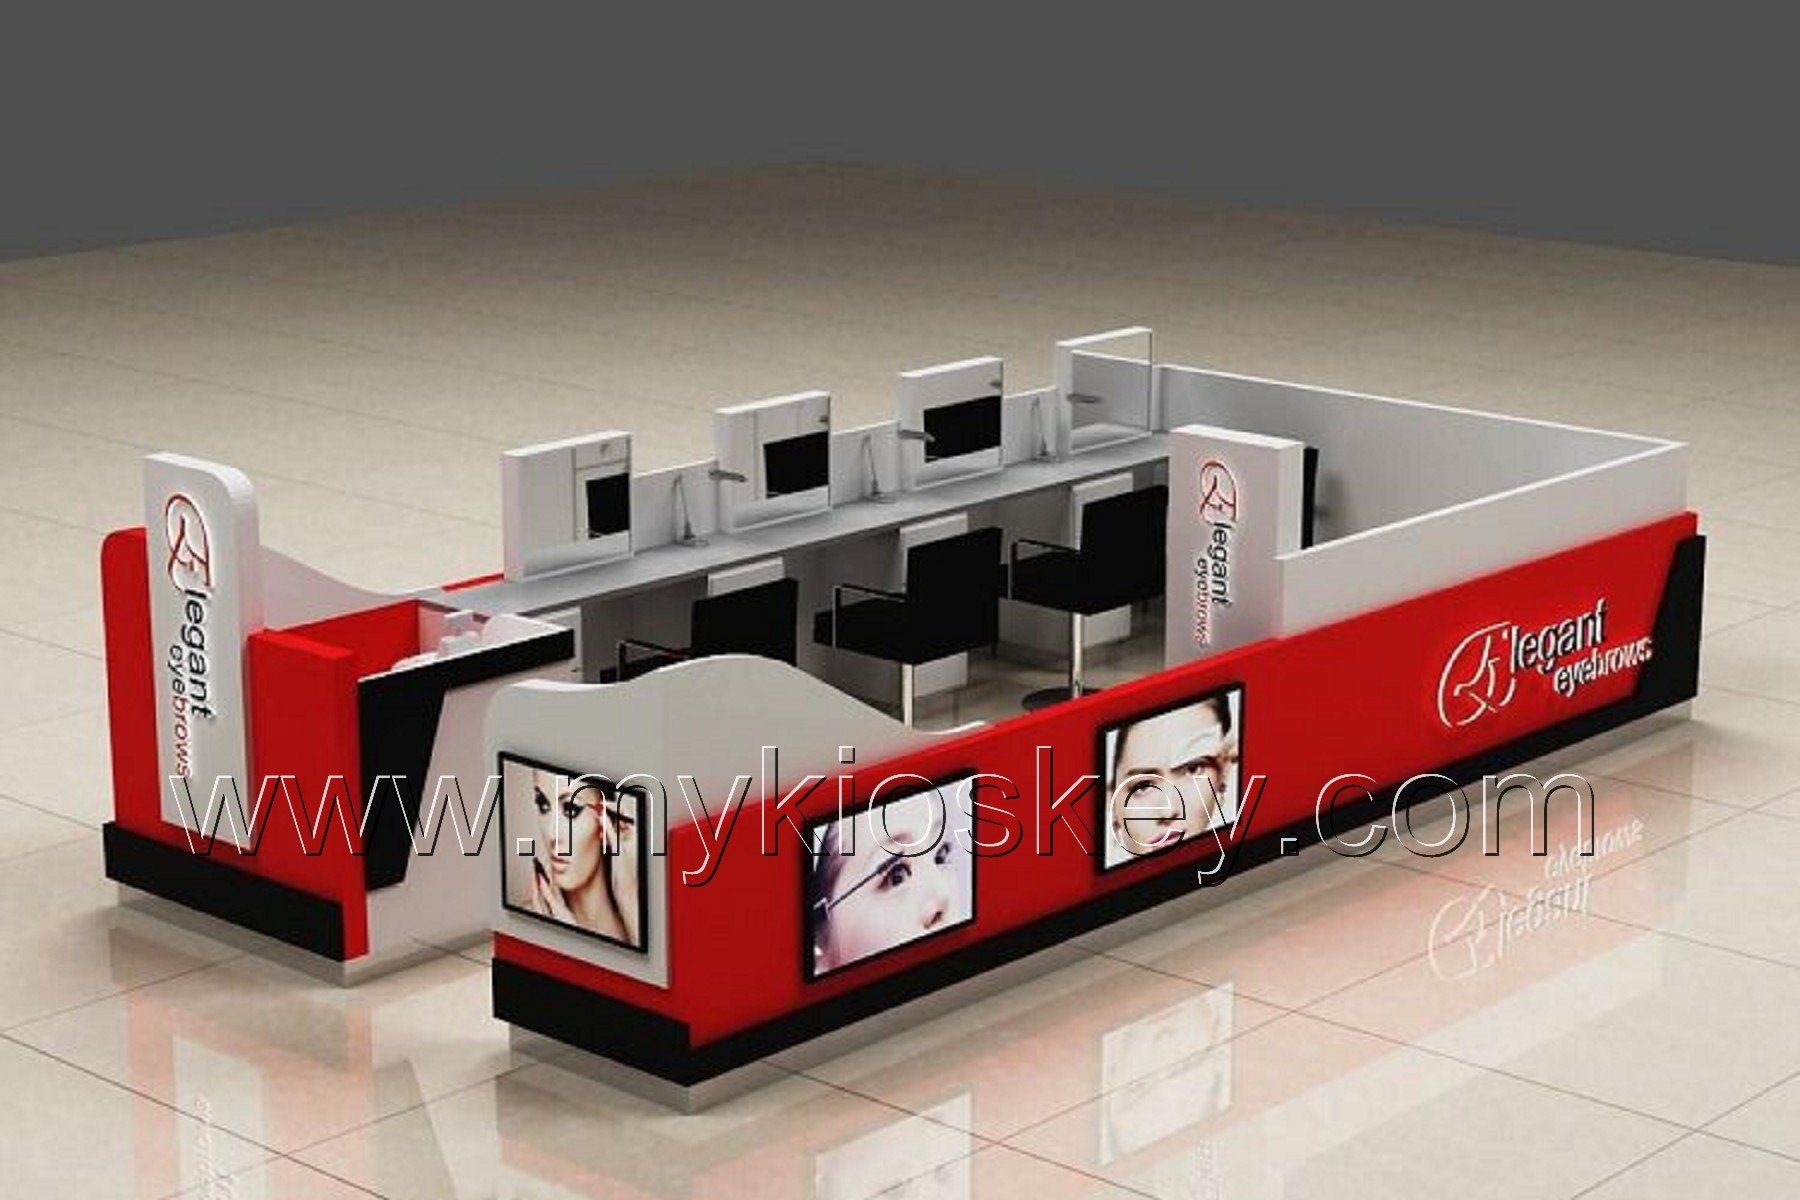 red eyebrow kiosk (1)